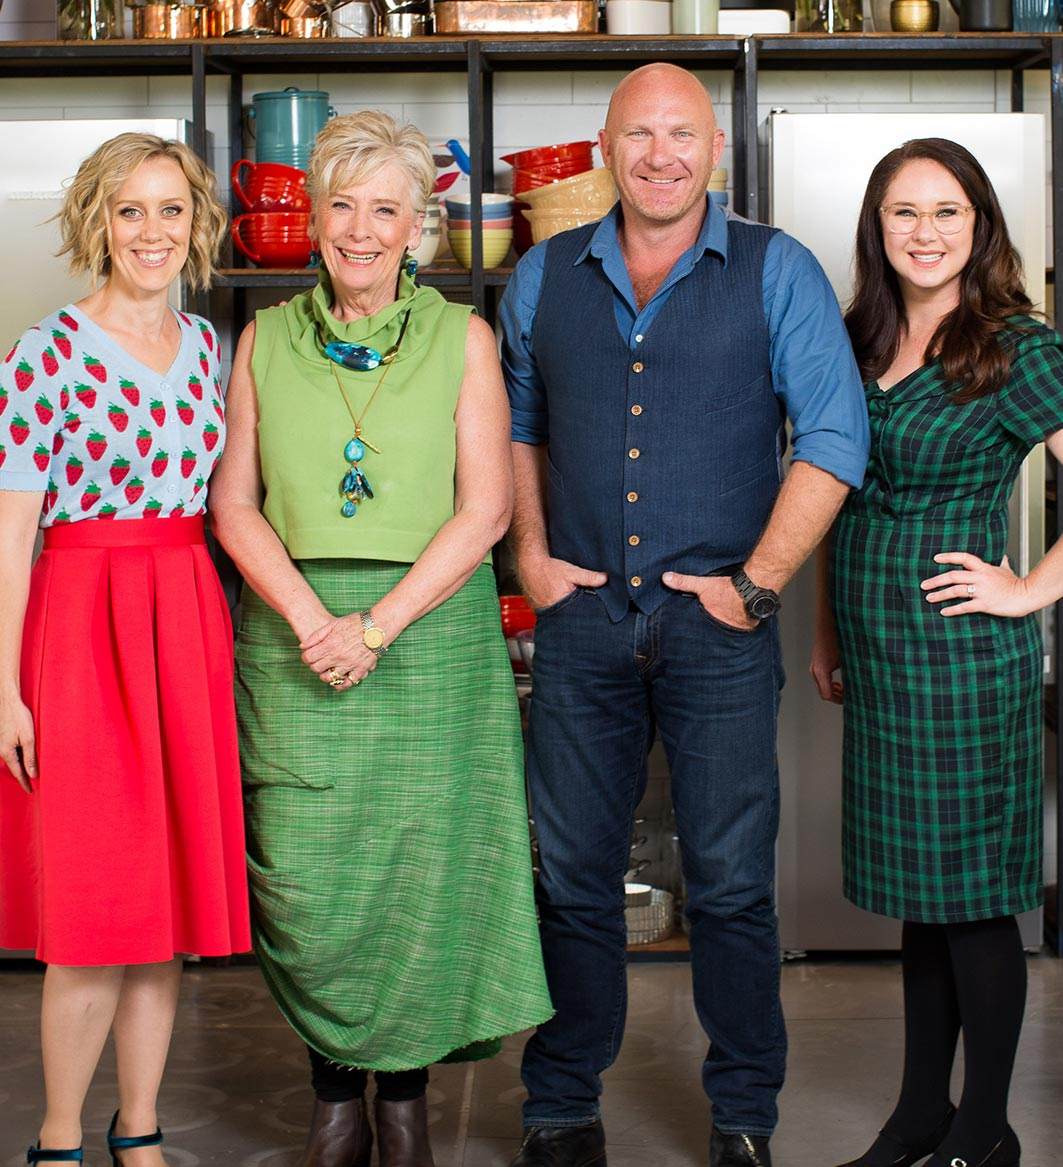 THE GREAT AUSTRALIAN BAKE OFF  Lifestyle FOOD  On your marks, get set…bake! Judged by culinary icon Maggie Beer and acclaimed chef Matt Moran, and hosted by comedians Claire Hooper and Mel Buttle, The Great Australian Bake Off follows 12 home baking enthusiasts as they are put through a series of intricate challenges to find Australia's Best Amateur Baker. Filming has finished for season four and the mouthwatering challenges will leave viewers in food heaven as our bakers make the most beautiful food creations on television.